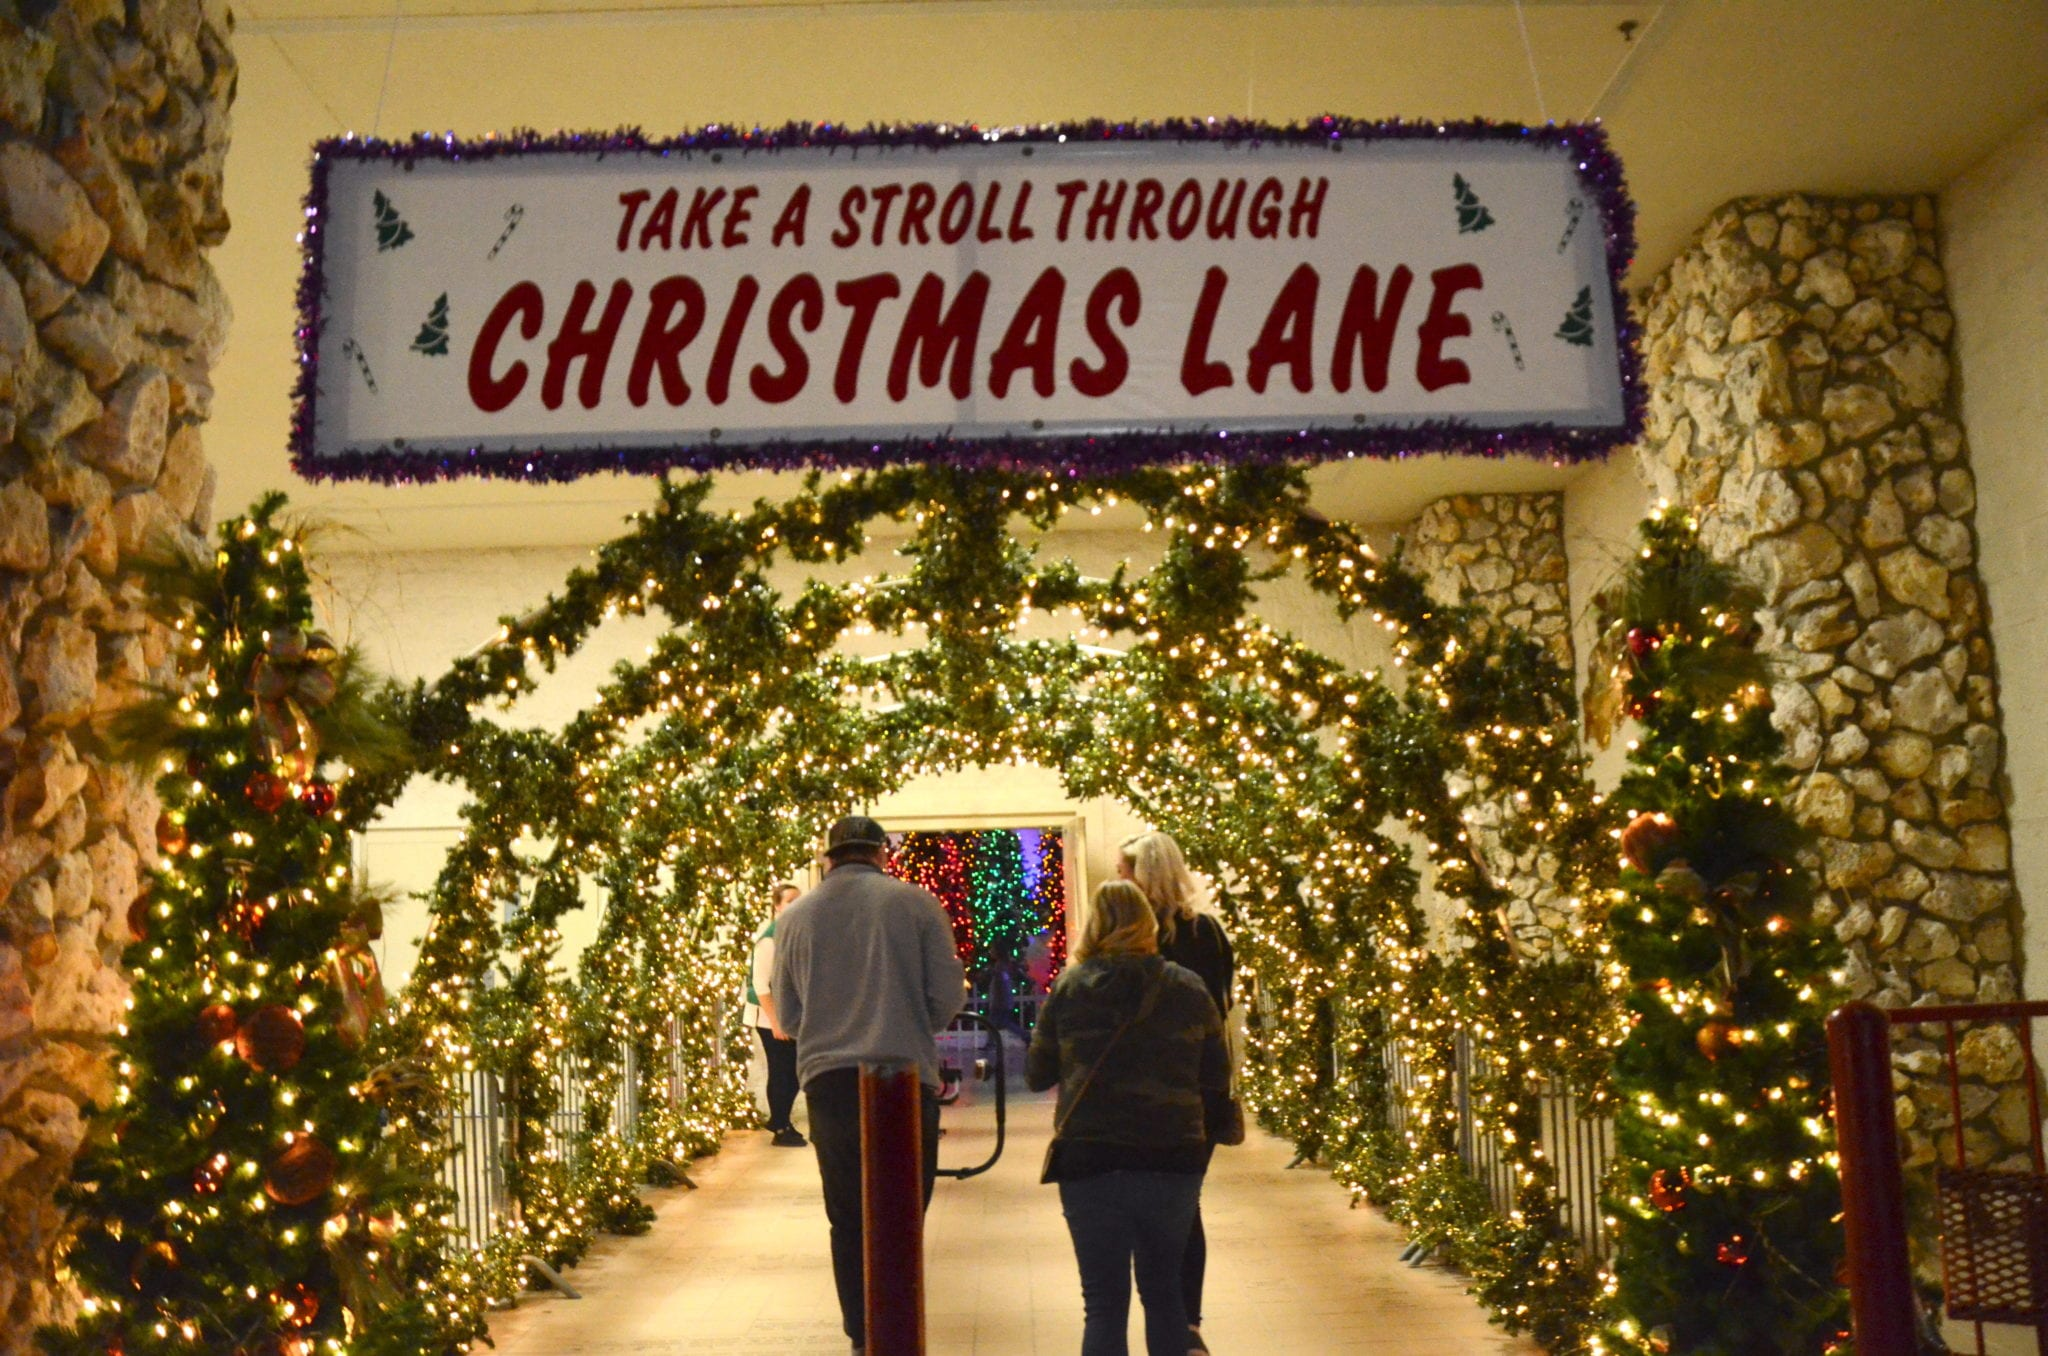 Christmas Lane Plant City 2020 Year in Photos: December 2019 | Plant City Observer